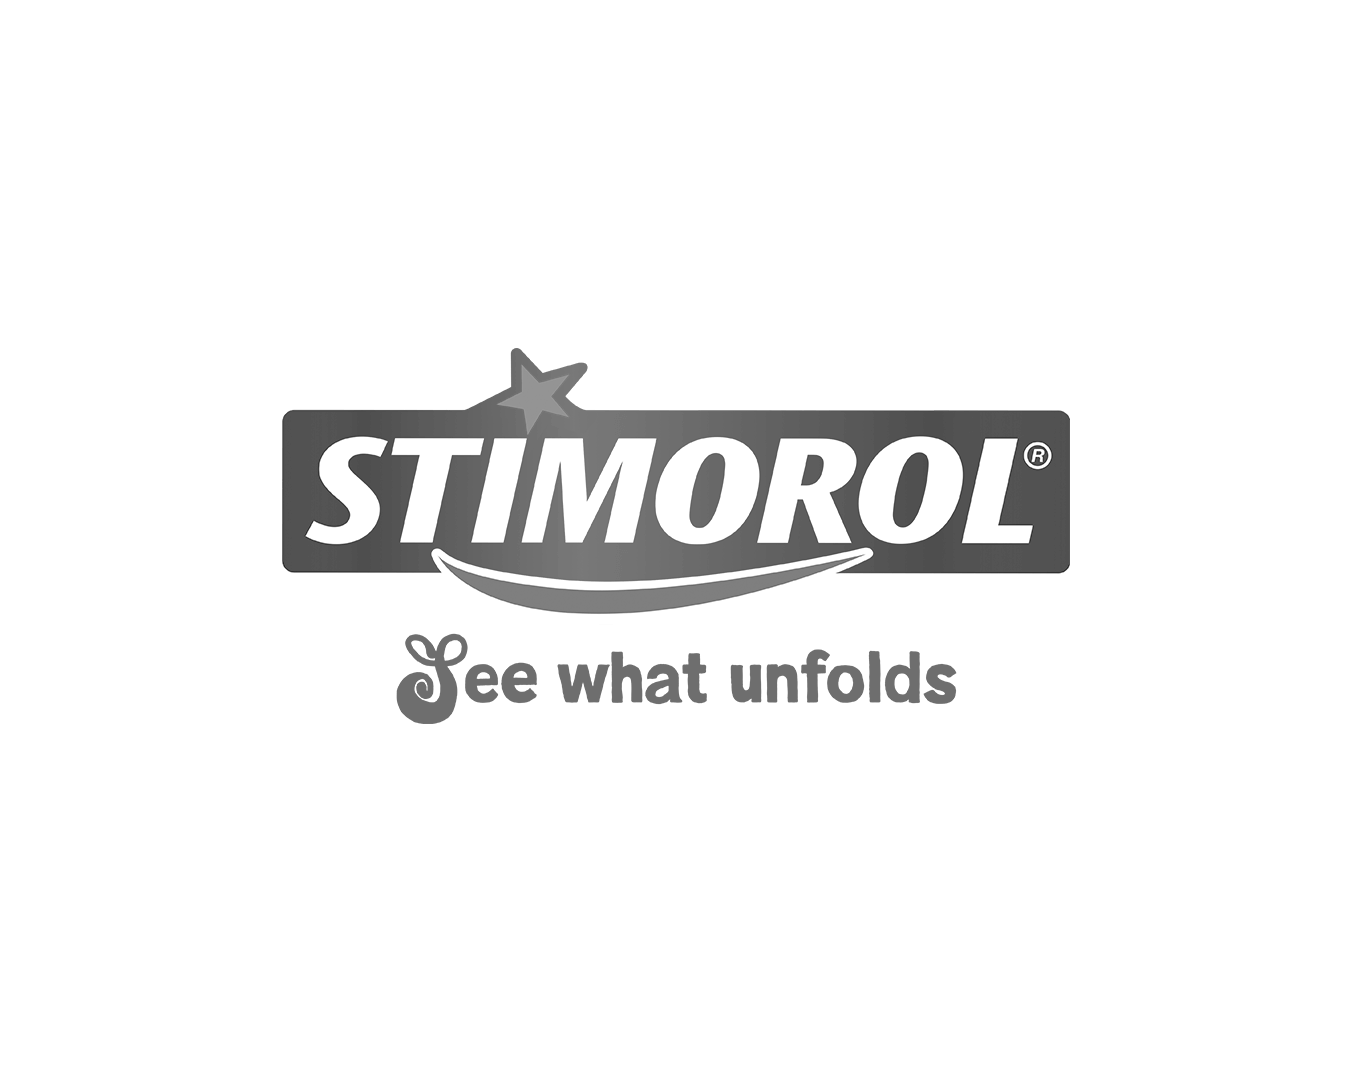 Stimorol APP sketches